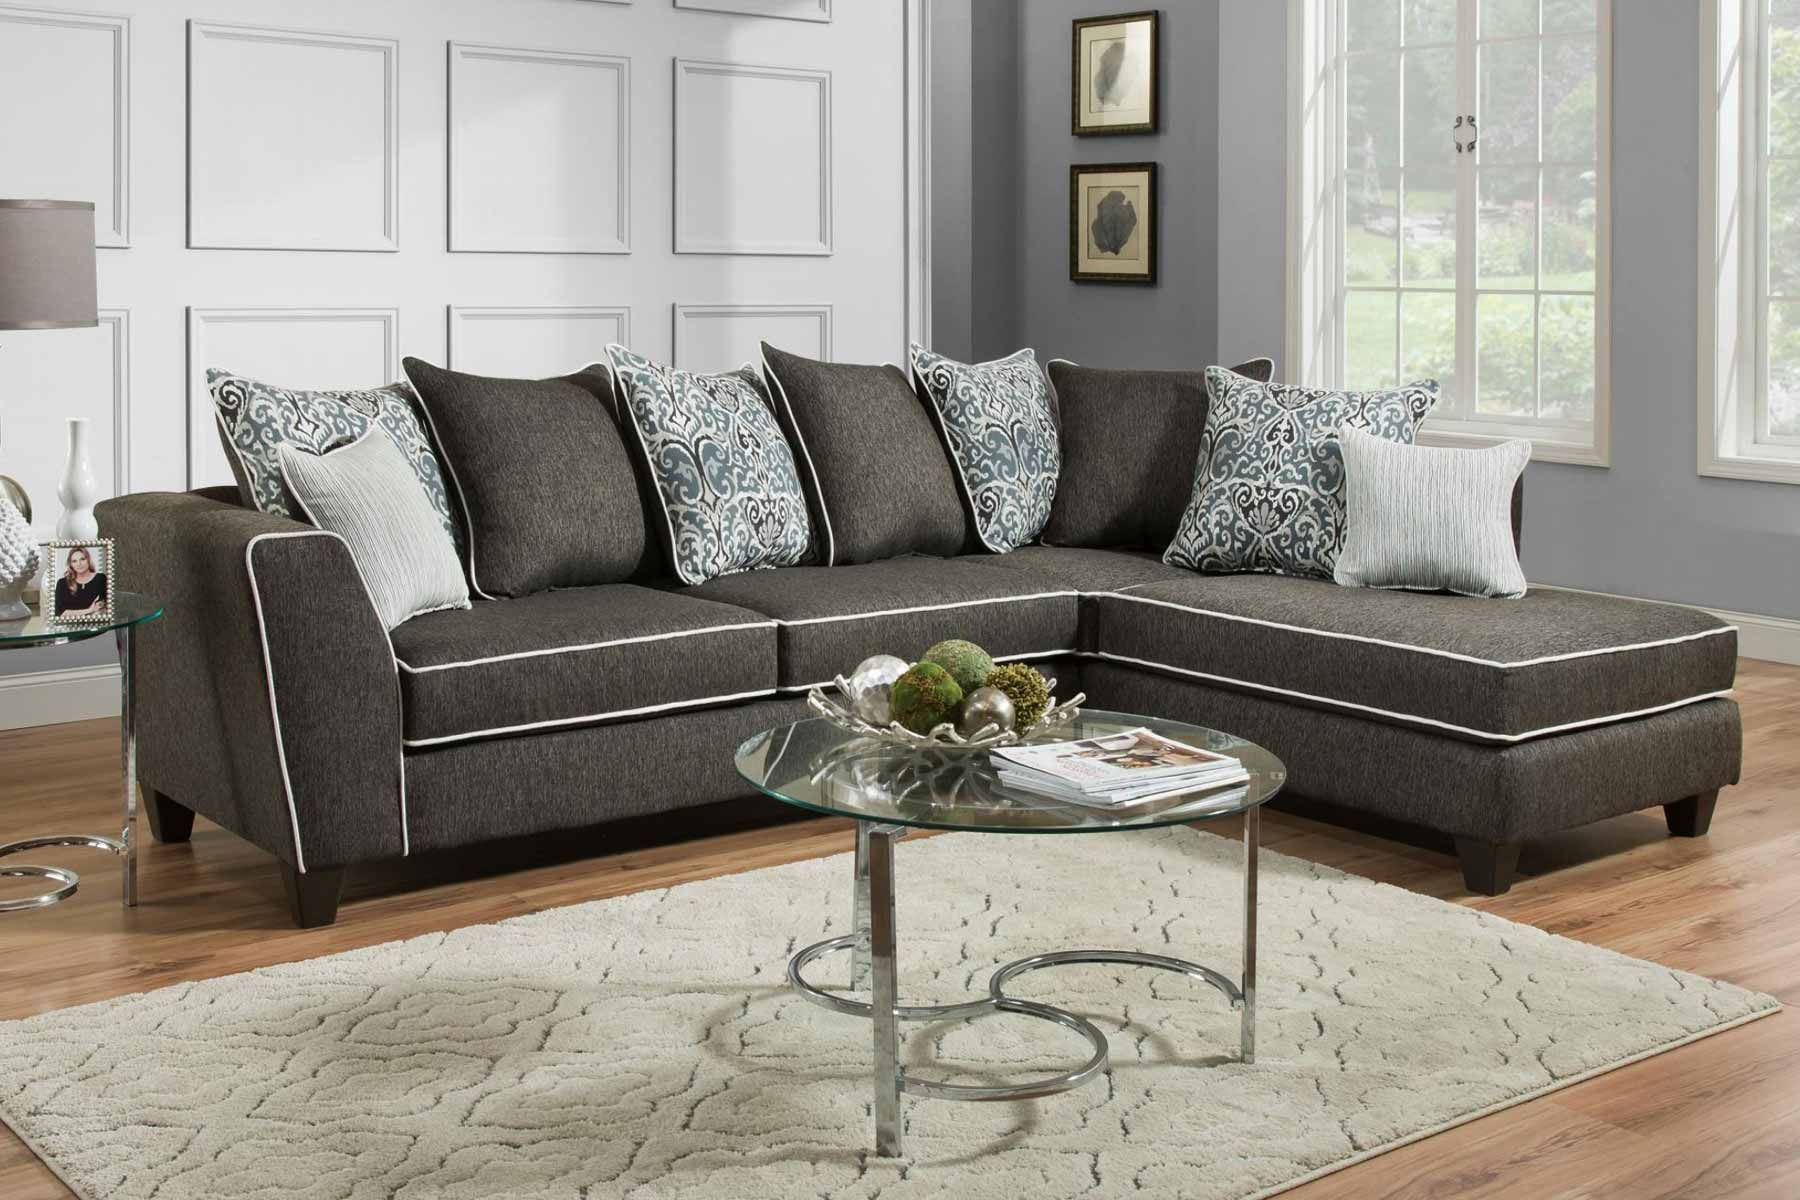 Cool Sullivan Onyx Sectional Living Rooms Living Room In 2019 Pabps2019 Chair Design Images Pabps2019Com